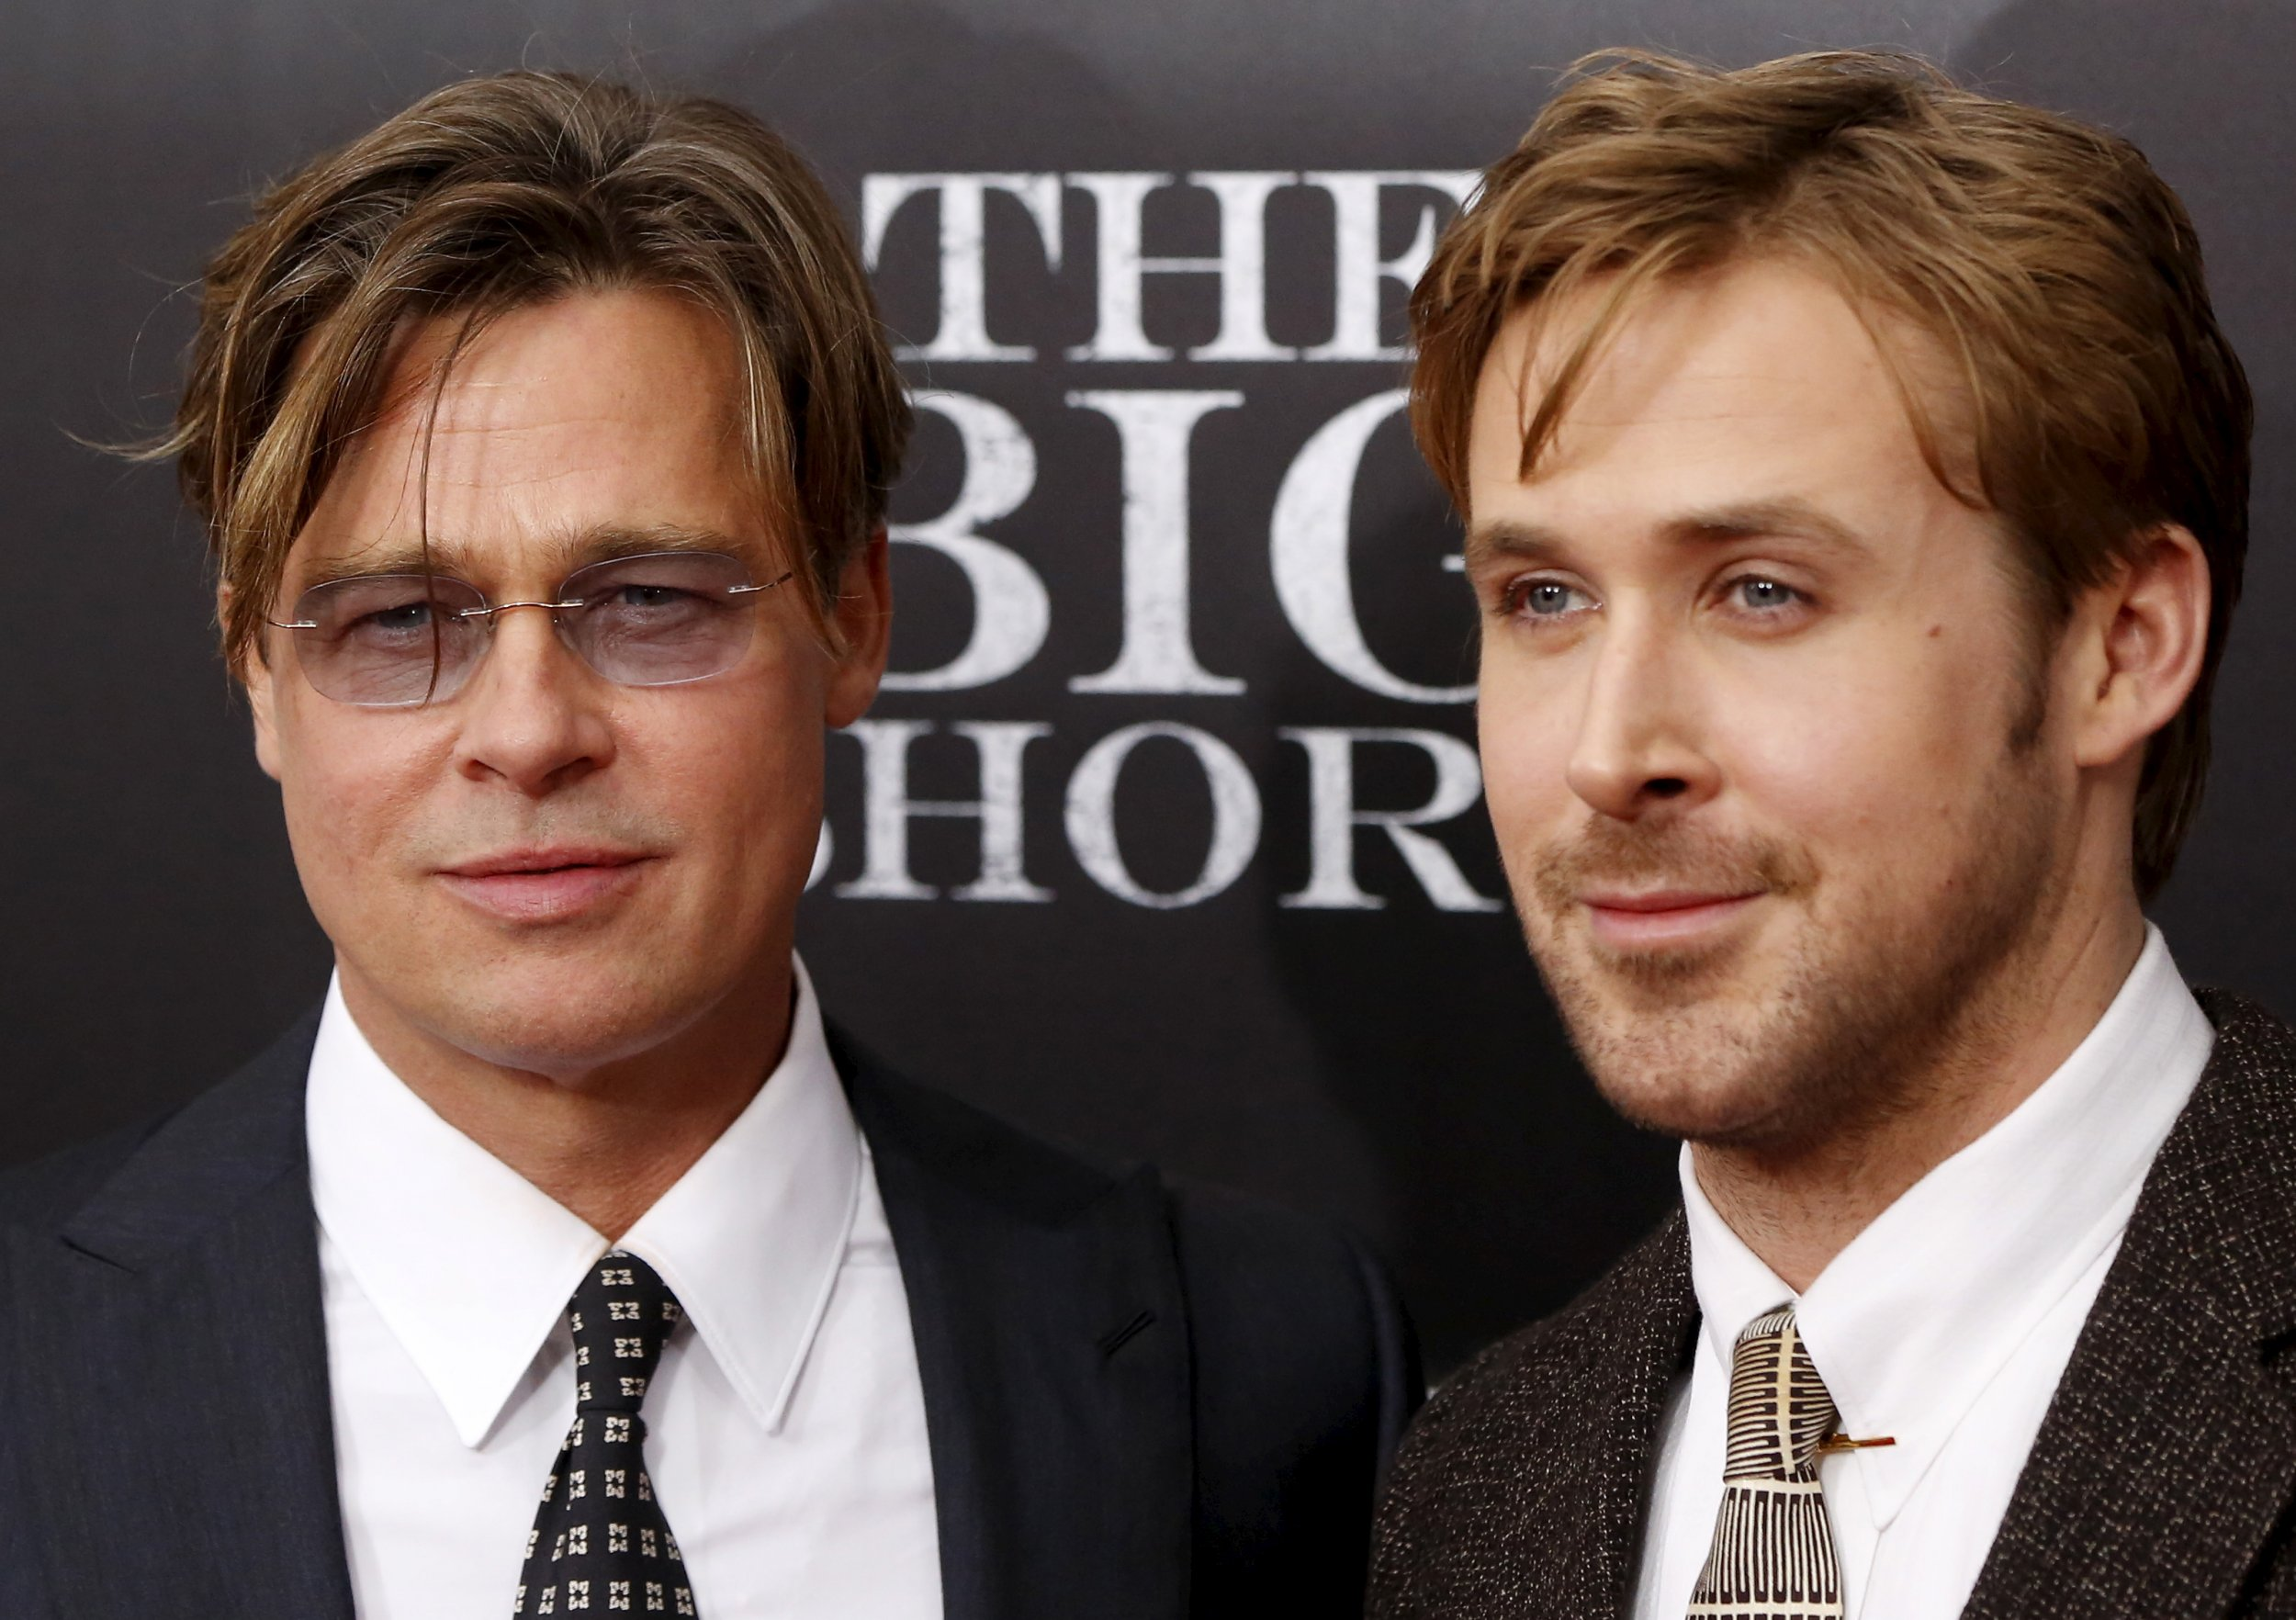 Did 'The Big Short' Get It Right?